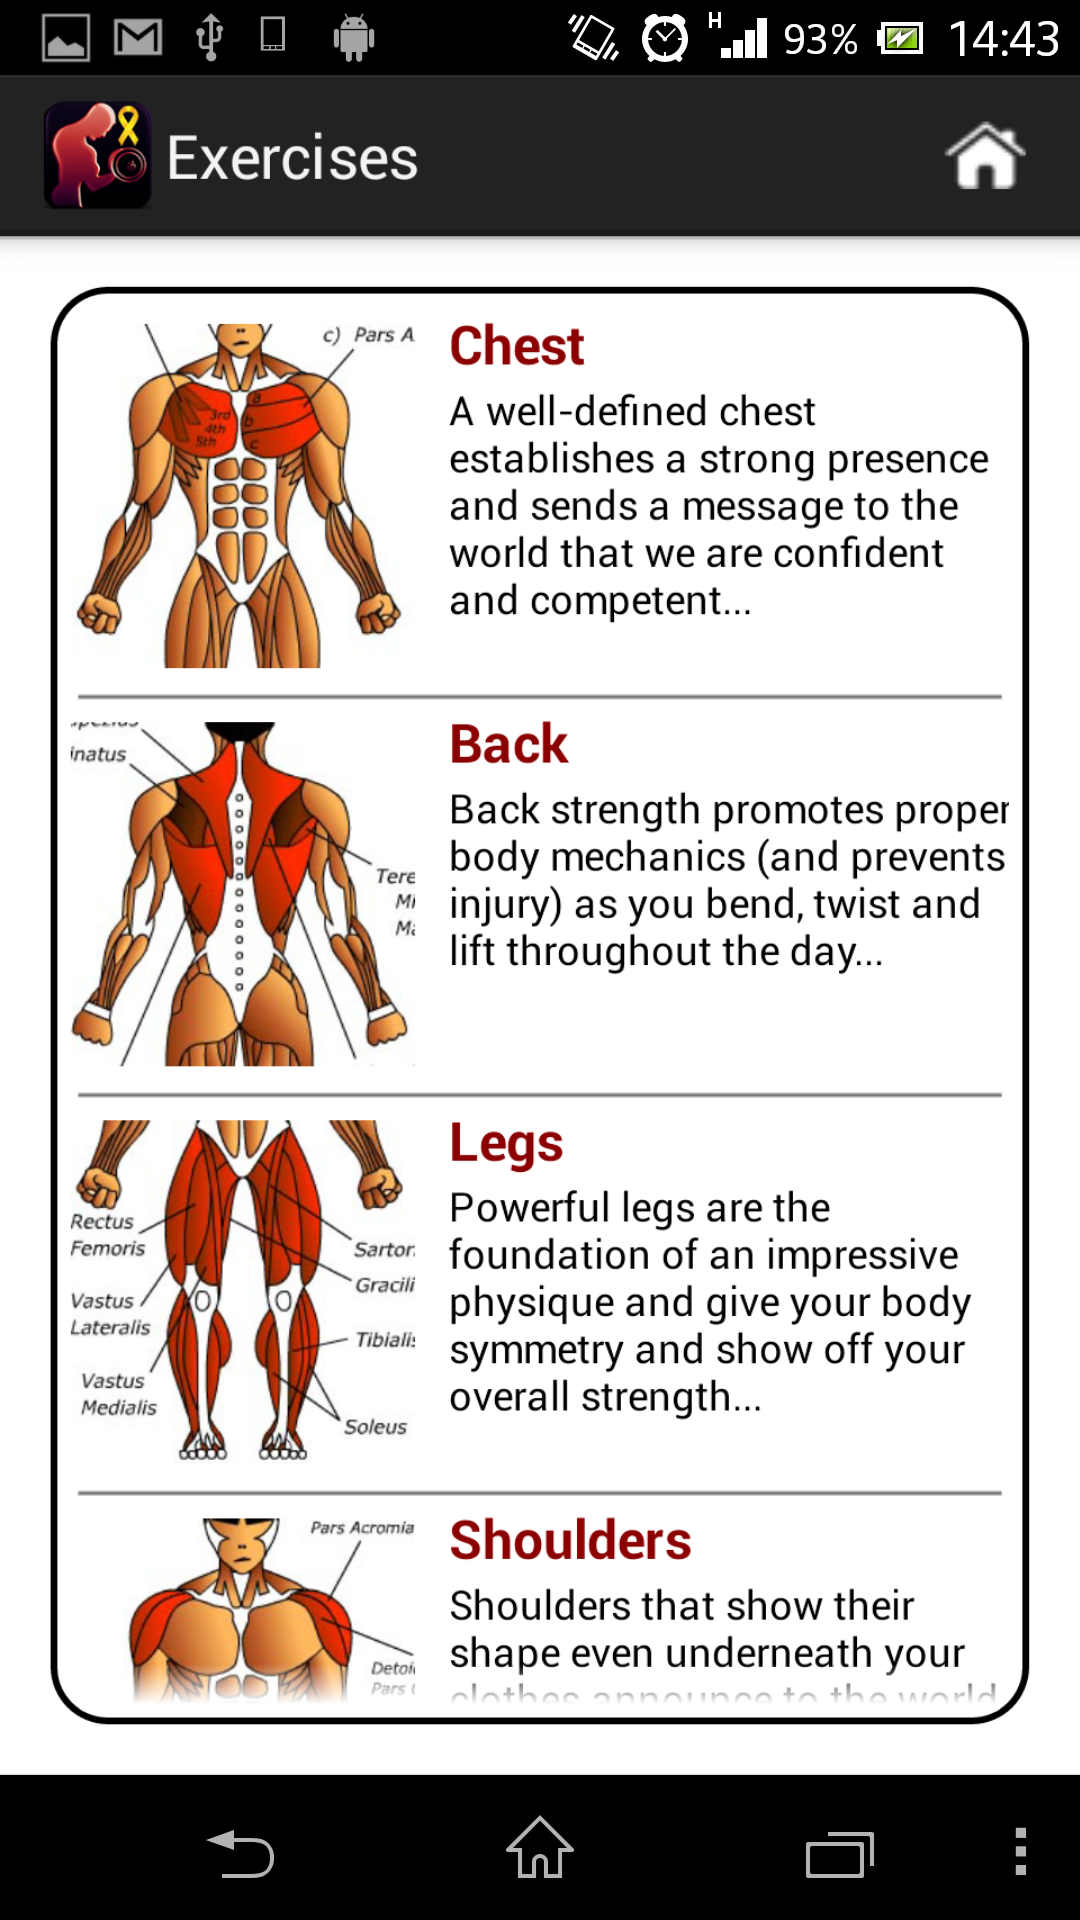 Dumbbells Muscle Workout Plan FREE: Amazon.co.uk: Appstore for Android